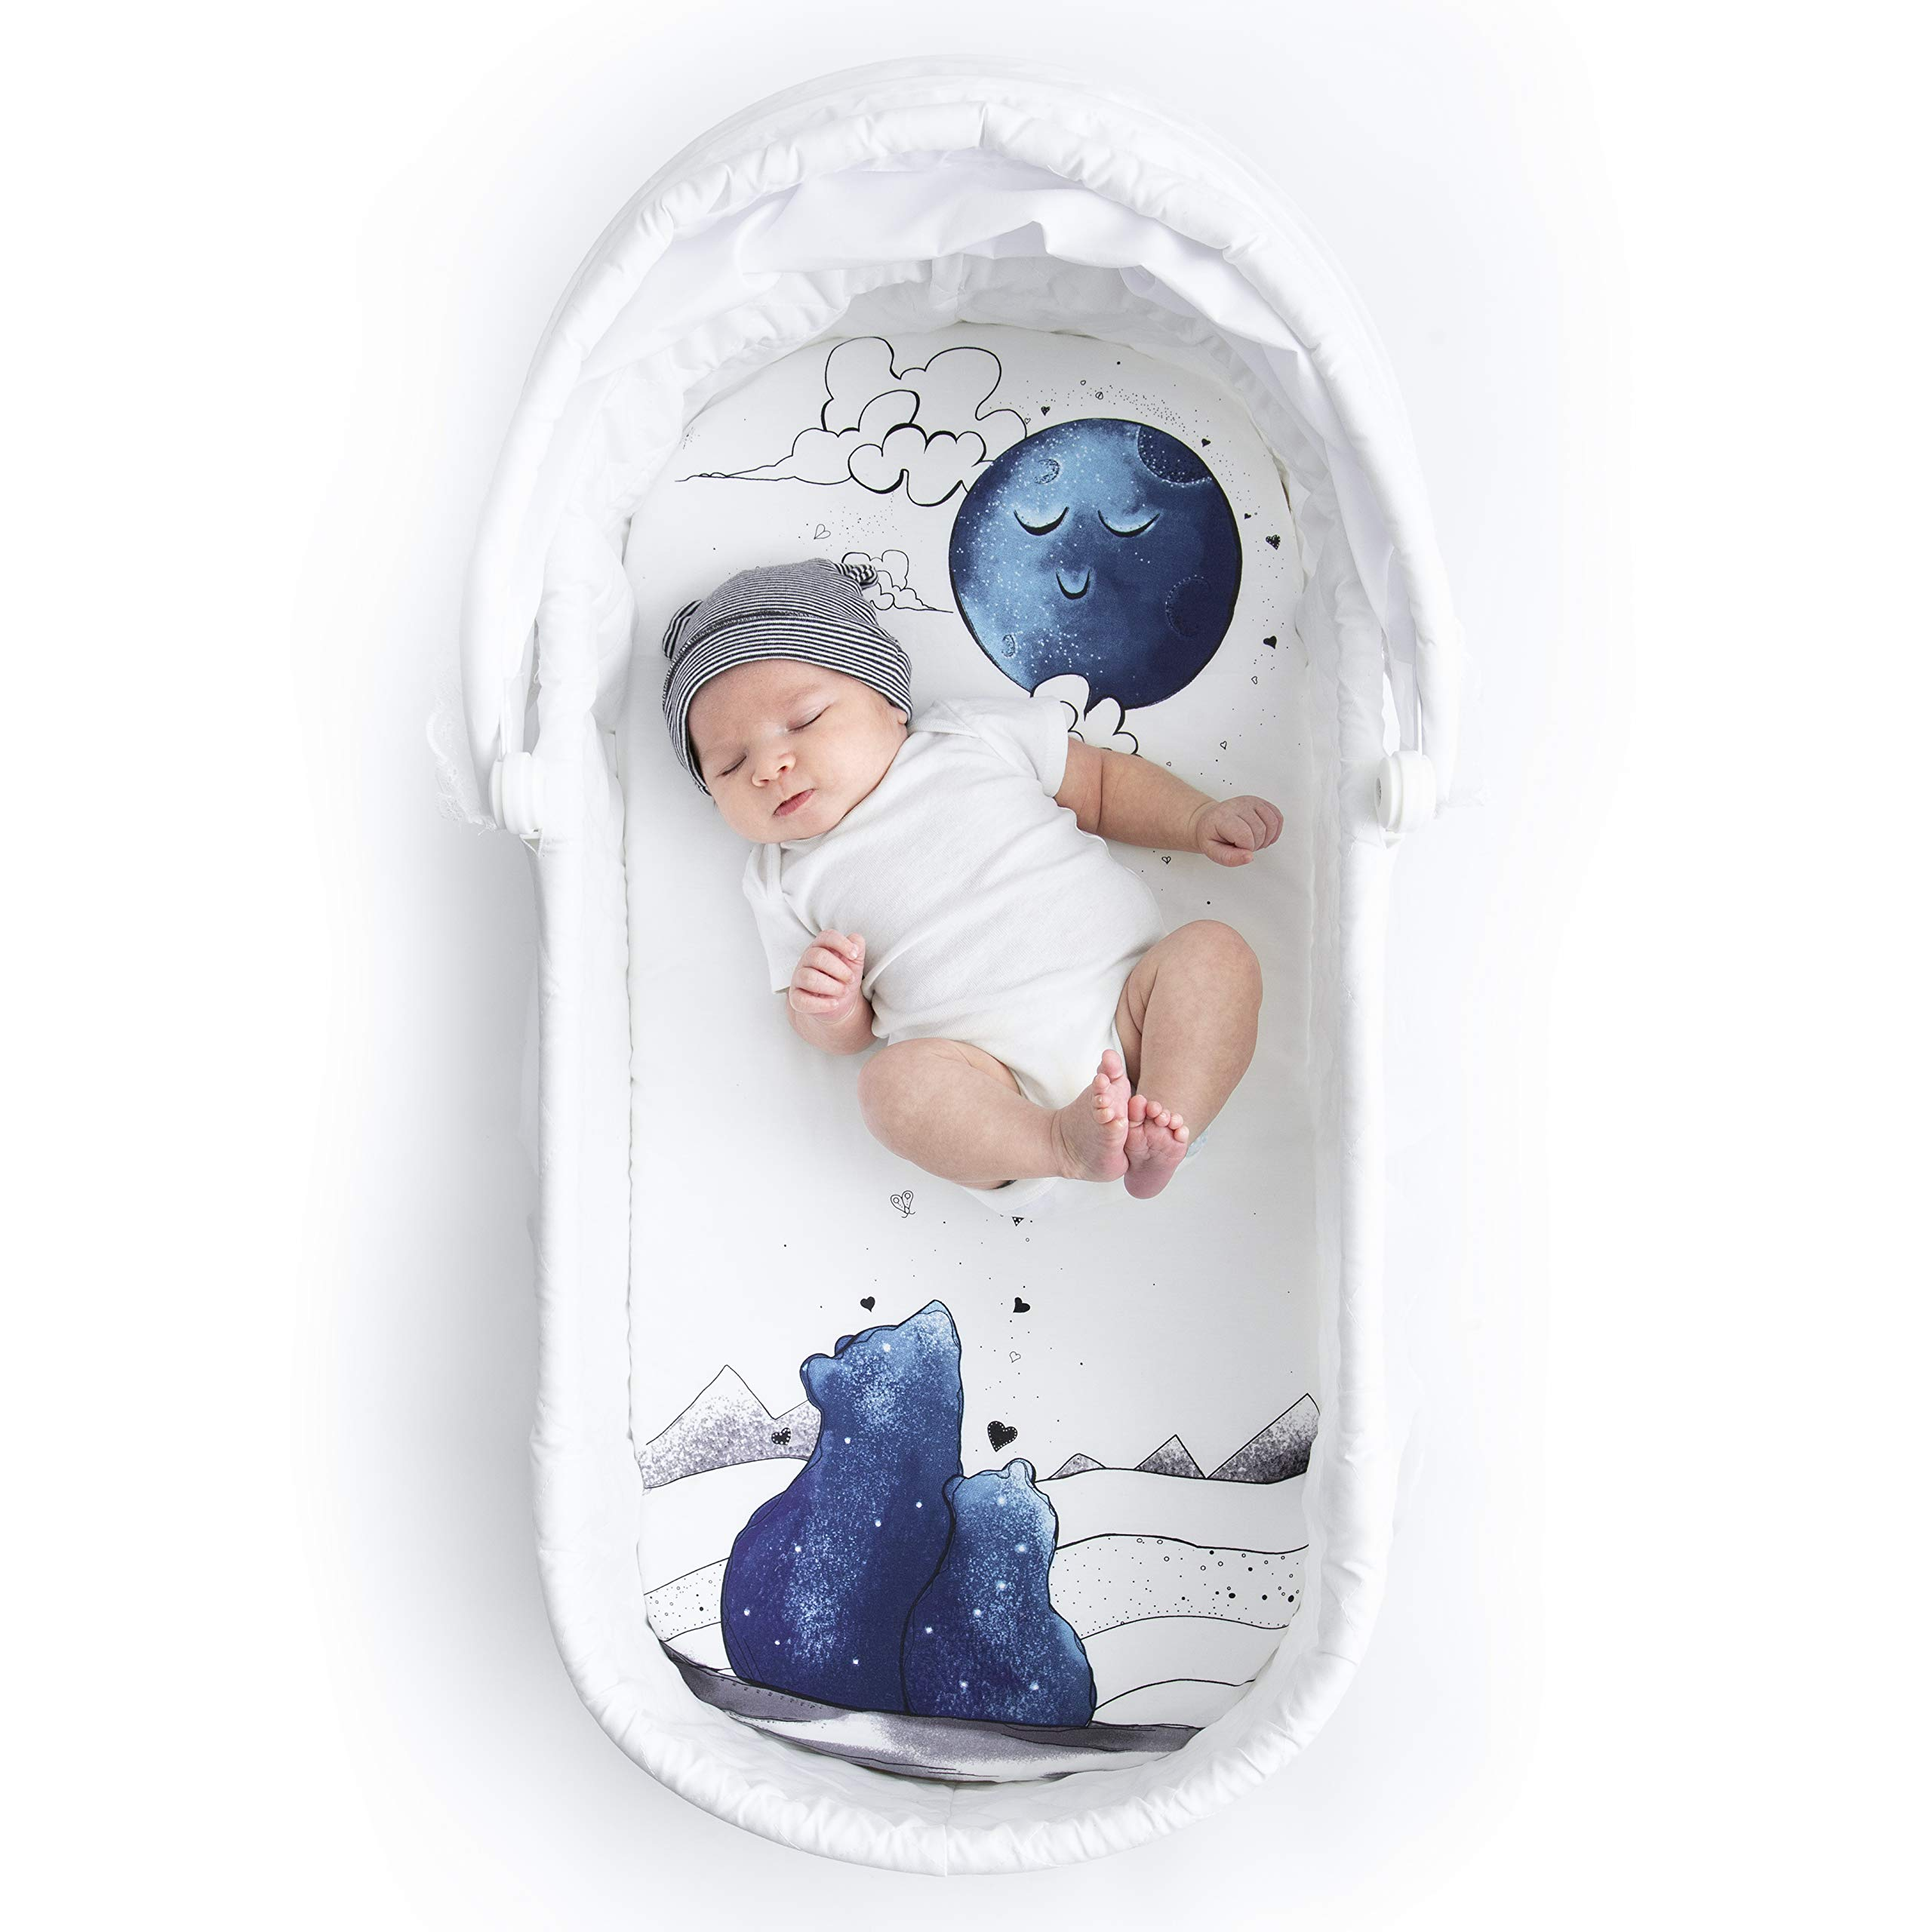 JumpOff Jo - Fitted Bassinet Sheet - 16'' x 32'' Fits Oval, Rectangle, and Hourglass Standard Sized Mattresses - 100% Cotton and Hypoallergenic - to The Moon Series: Mama Bear Blue